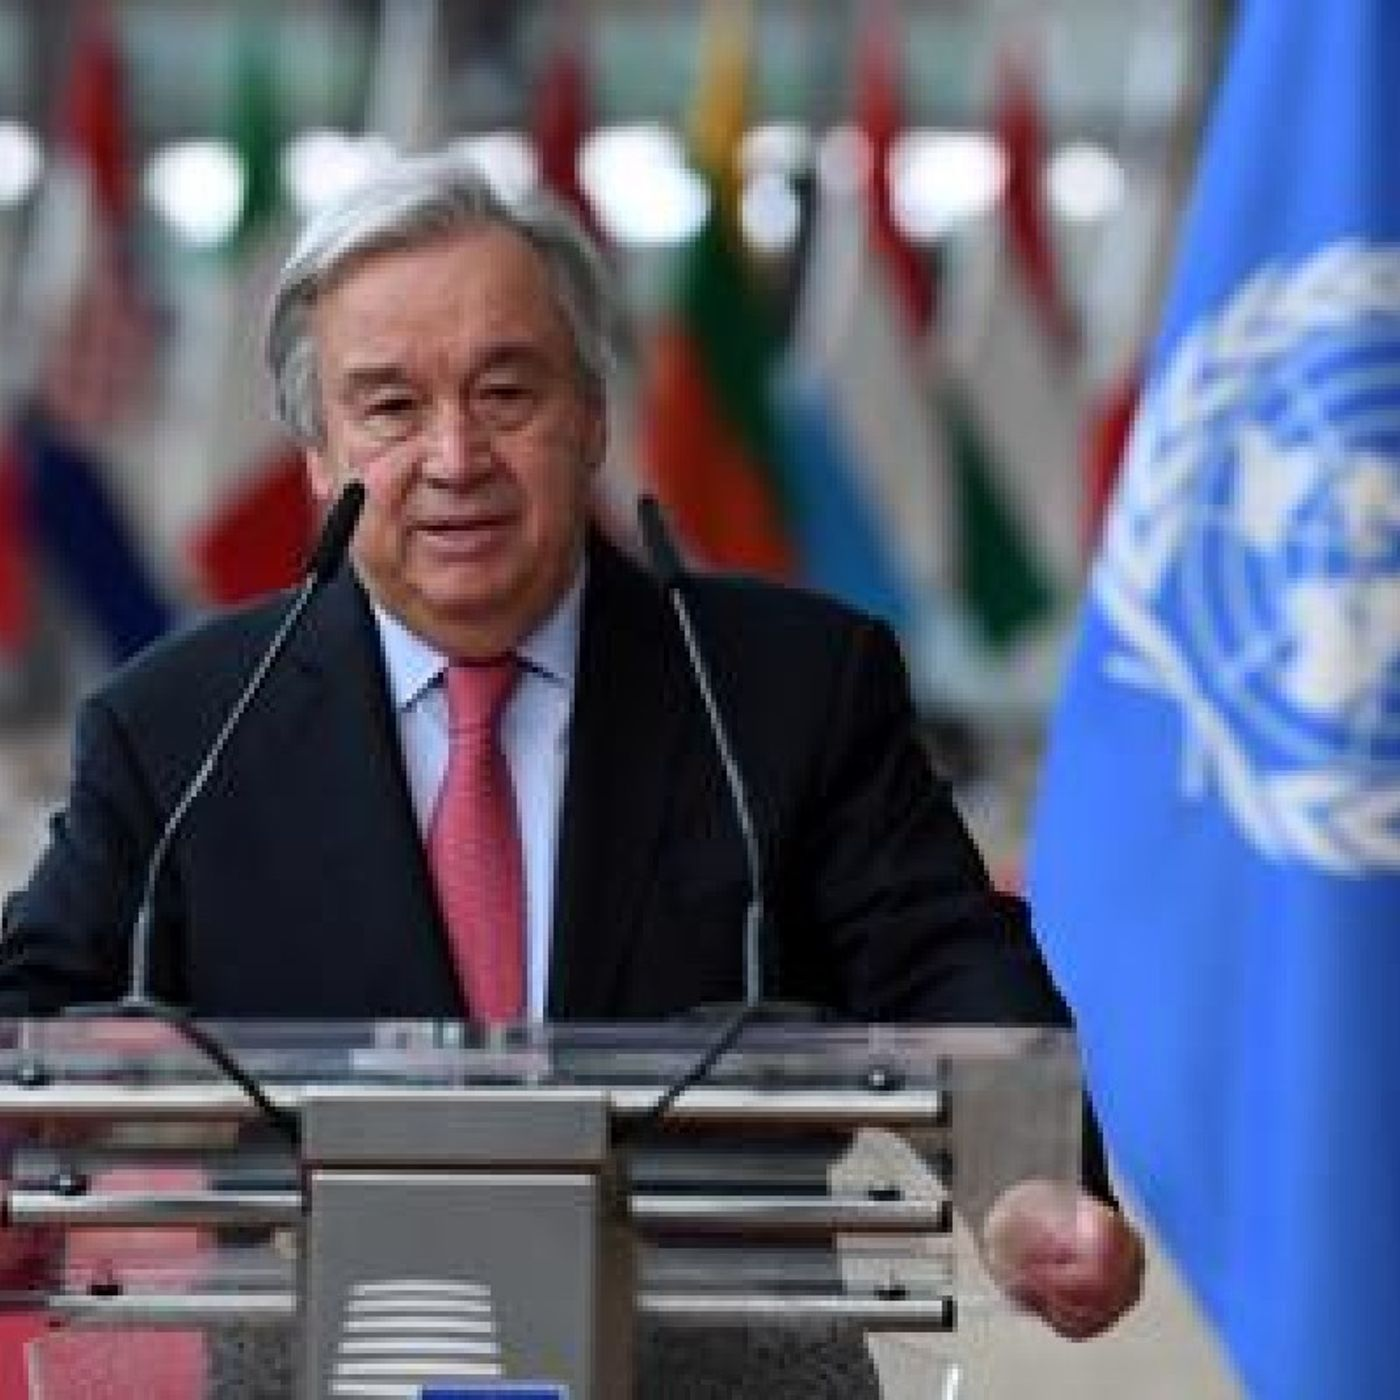 Episode 1383 - UN chief: World is at `pivotal moment' and must avert crises